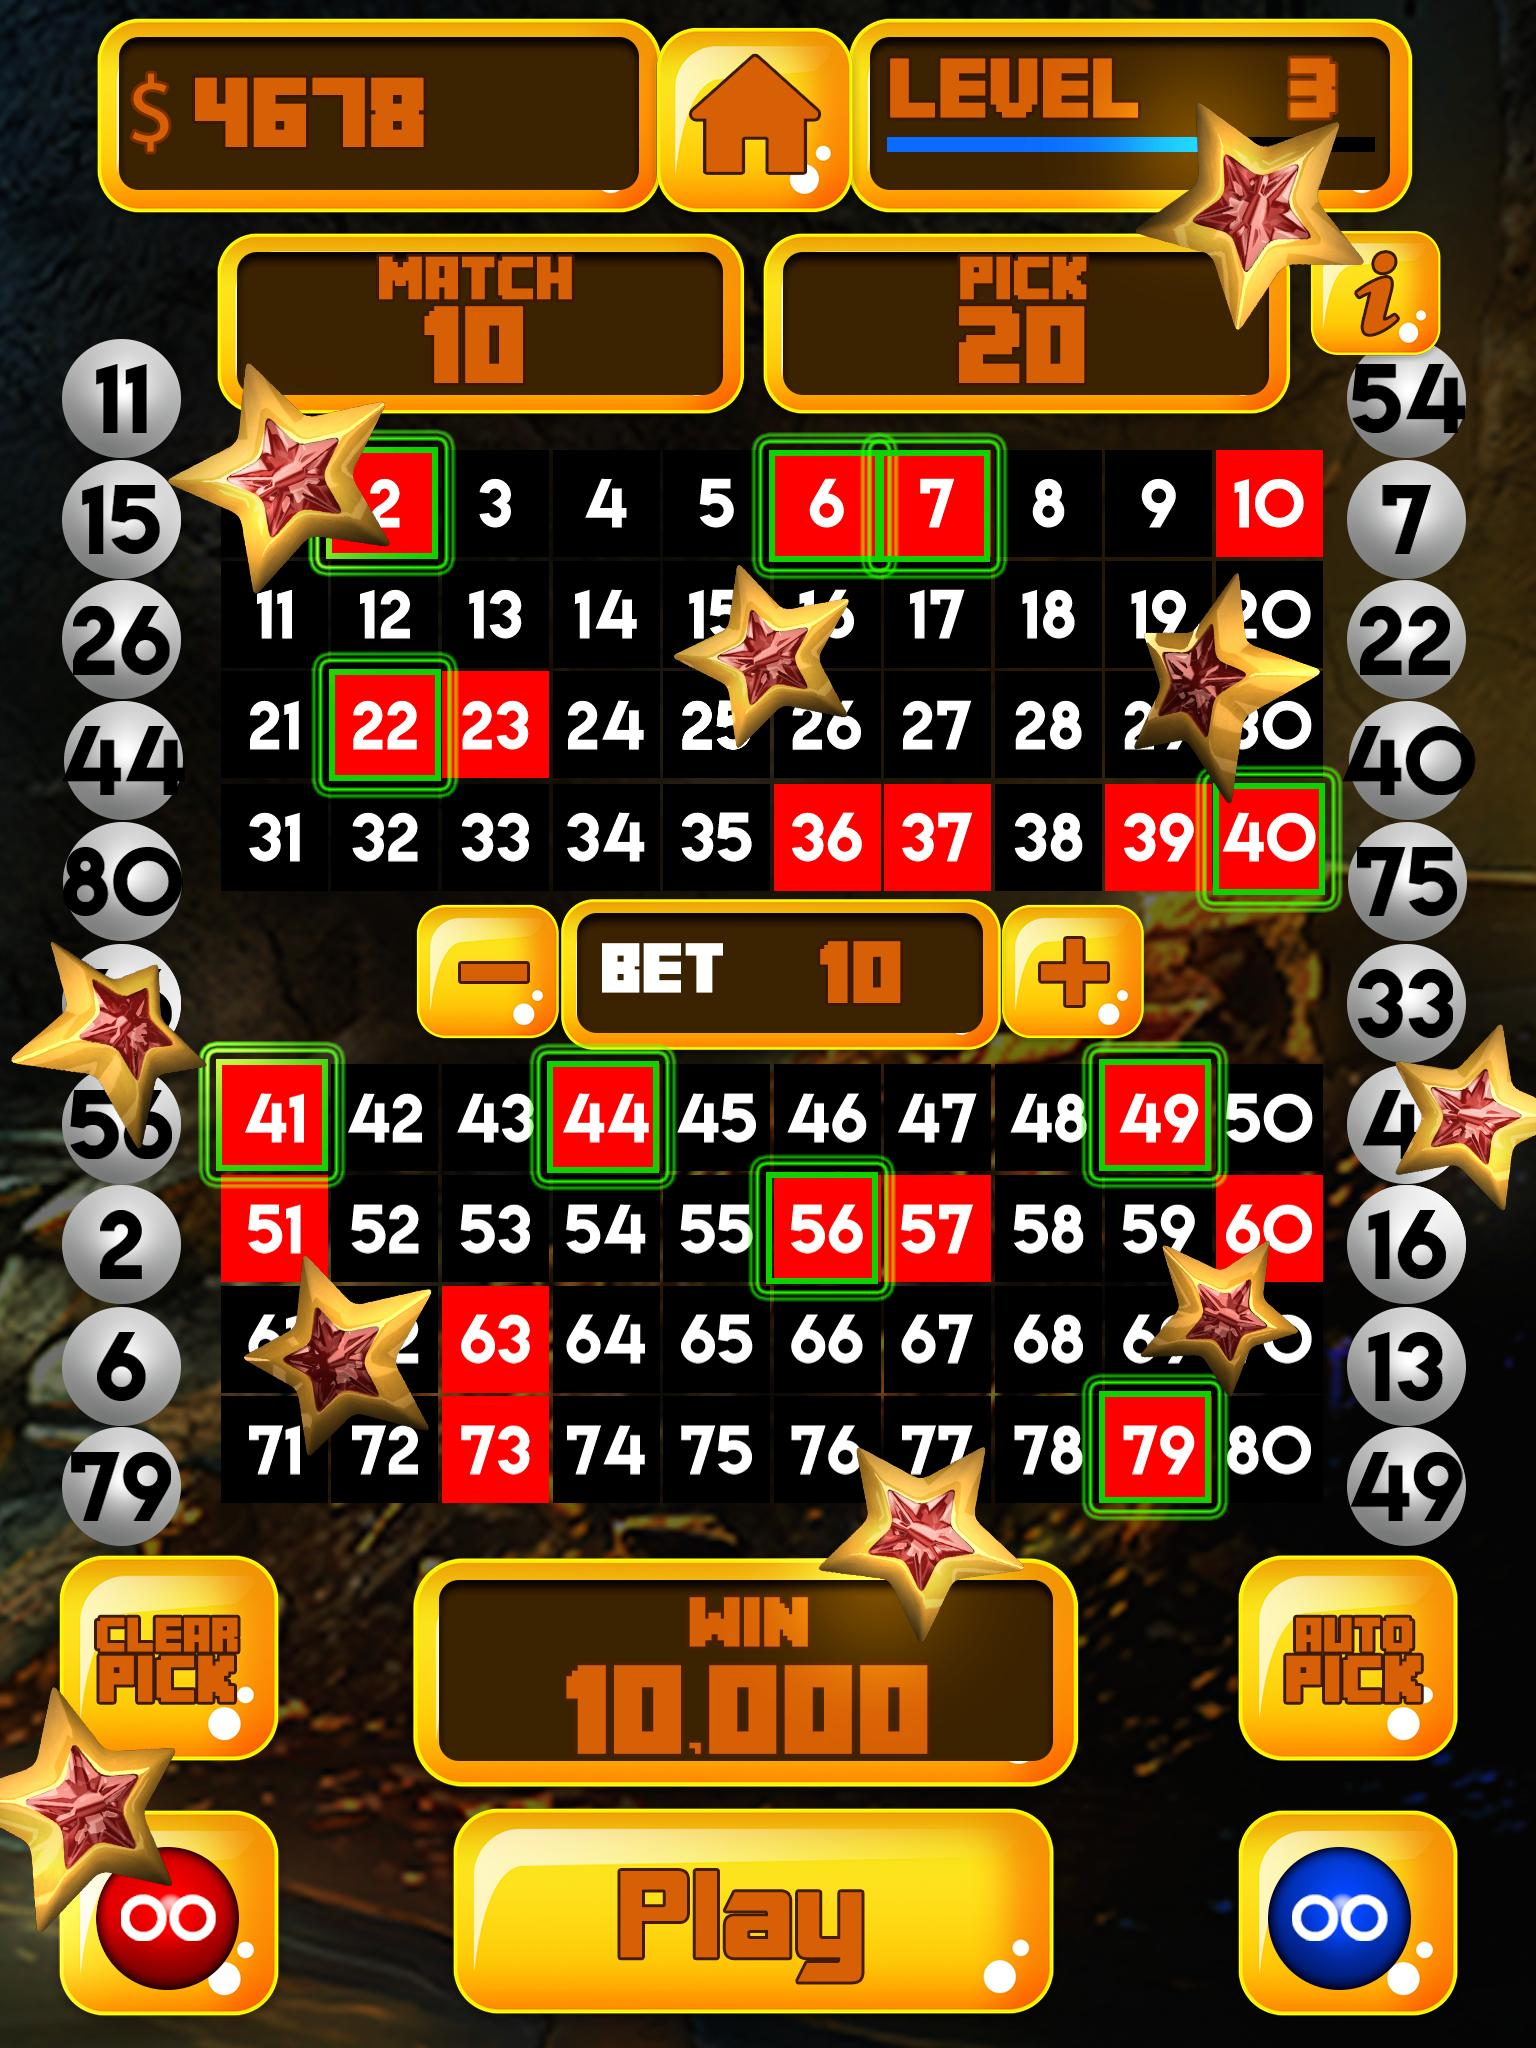 The Pirate Kings Lucky Numbers Keno Games for Android - APK Download